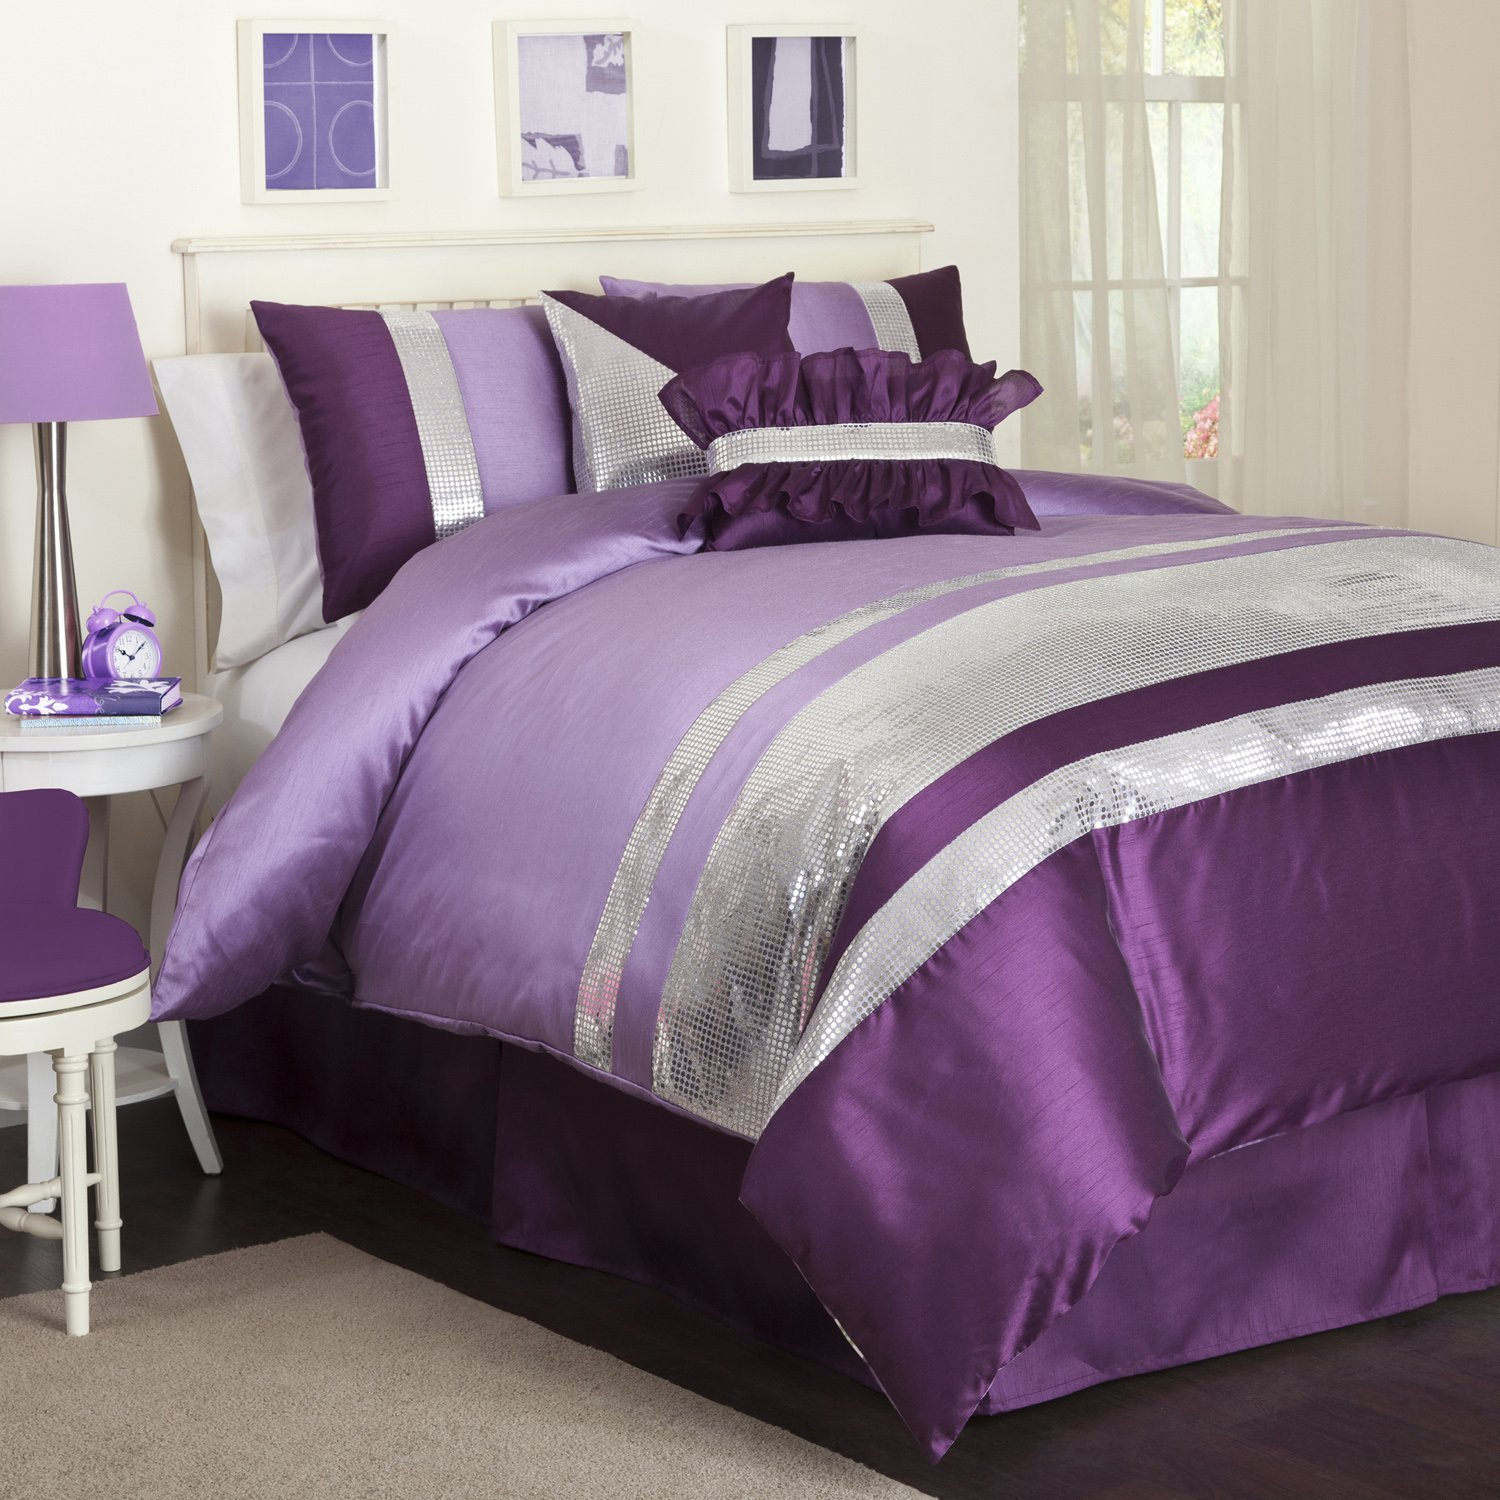 Purple Comforter Sets | Purple and Silver Comforter Sets | Dark Purple Comforter Set